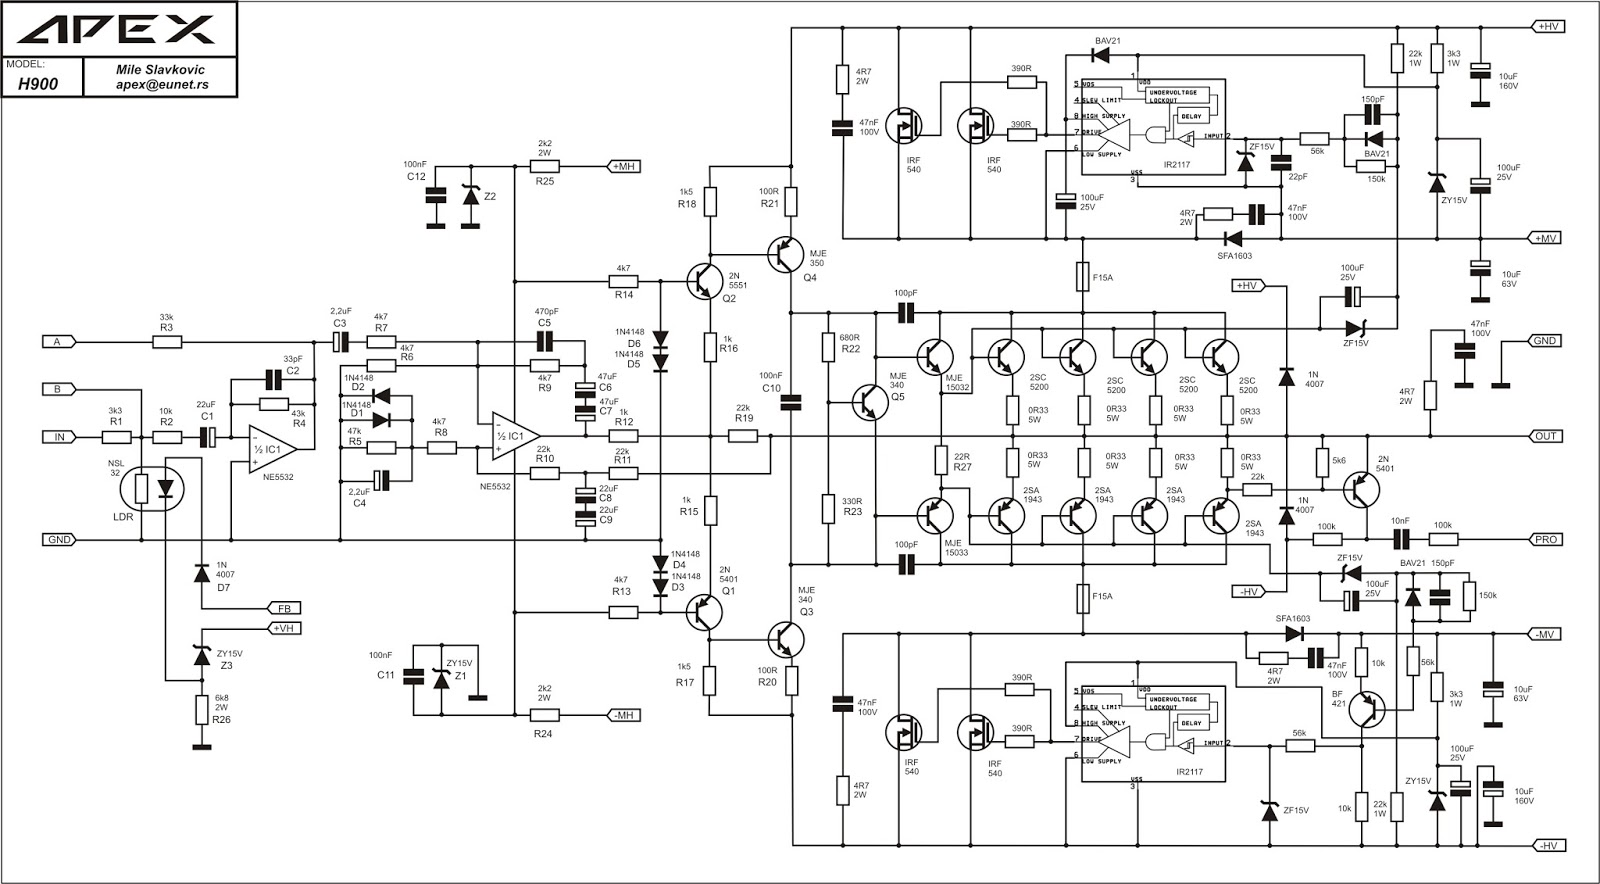 l schematic  u2013 the wiring diagram  u2013 readingrat net